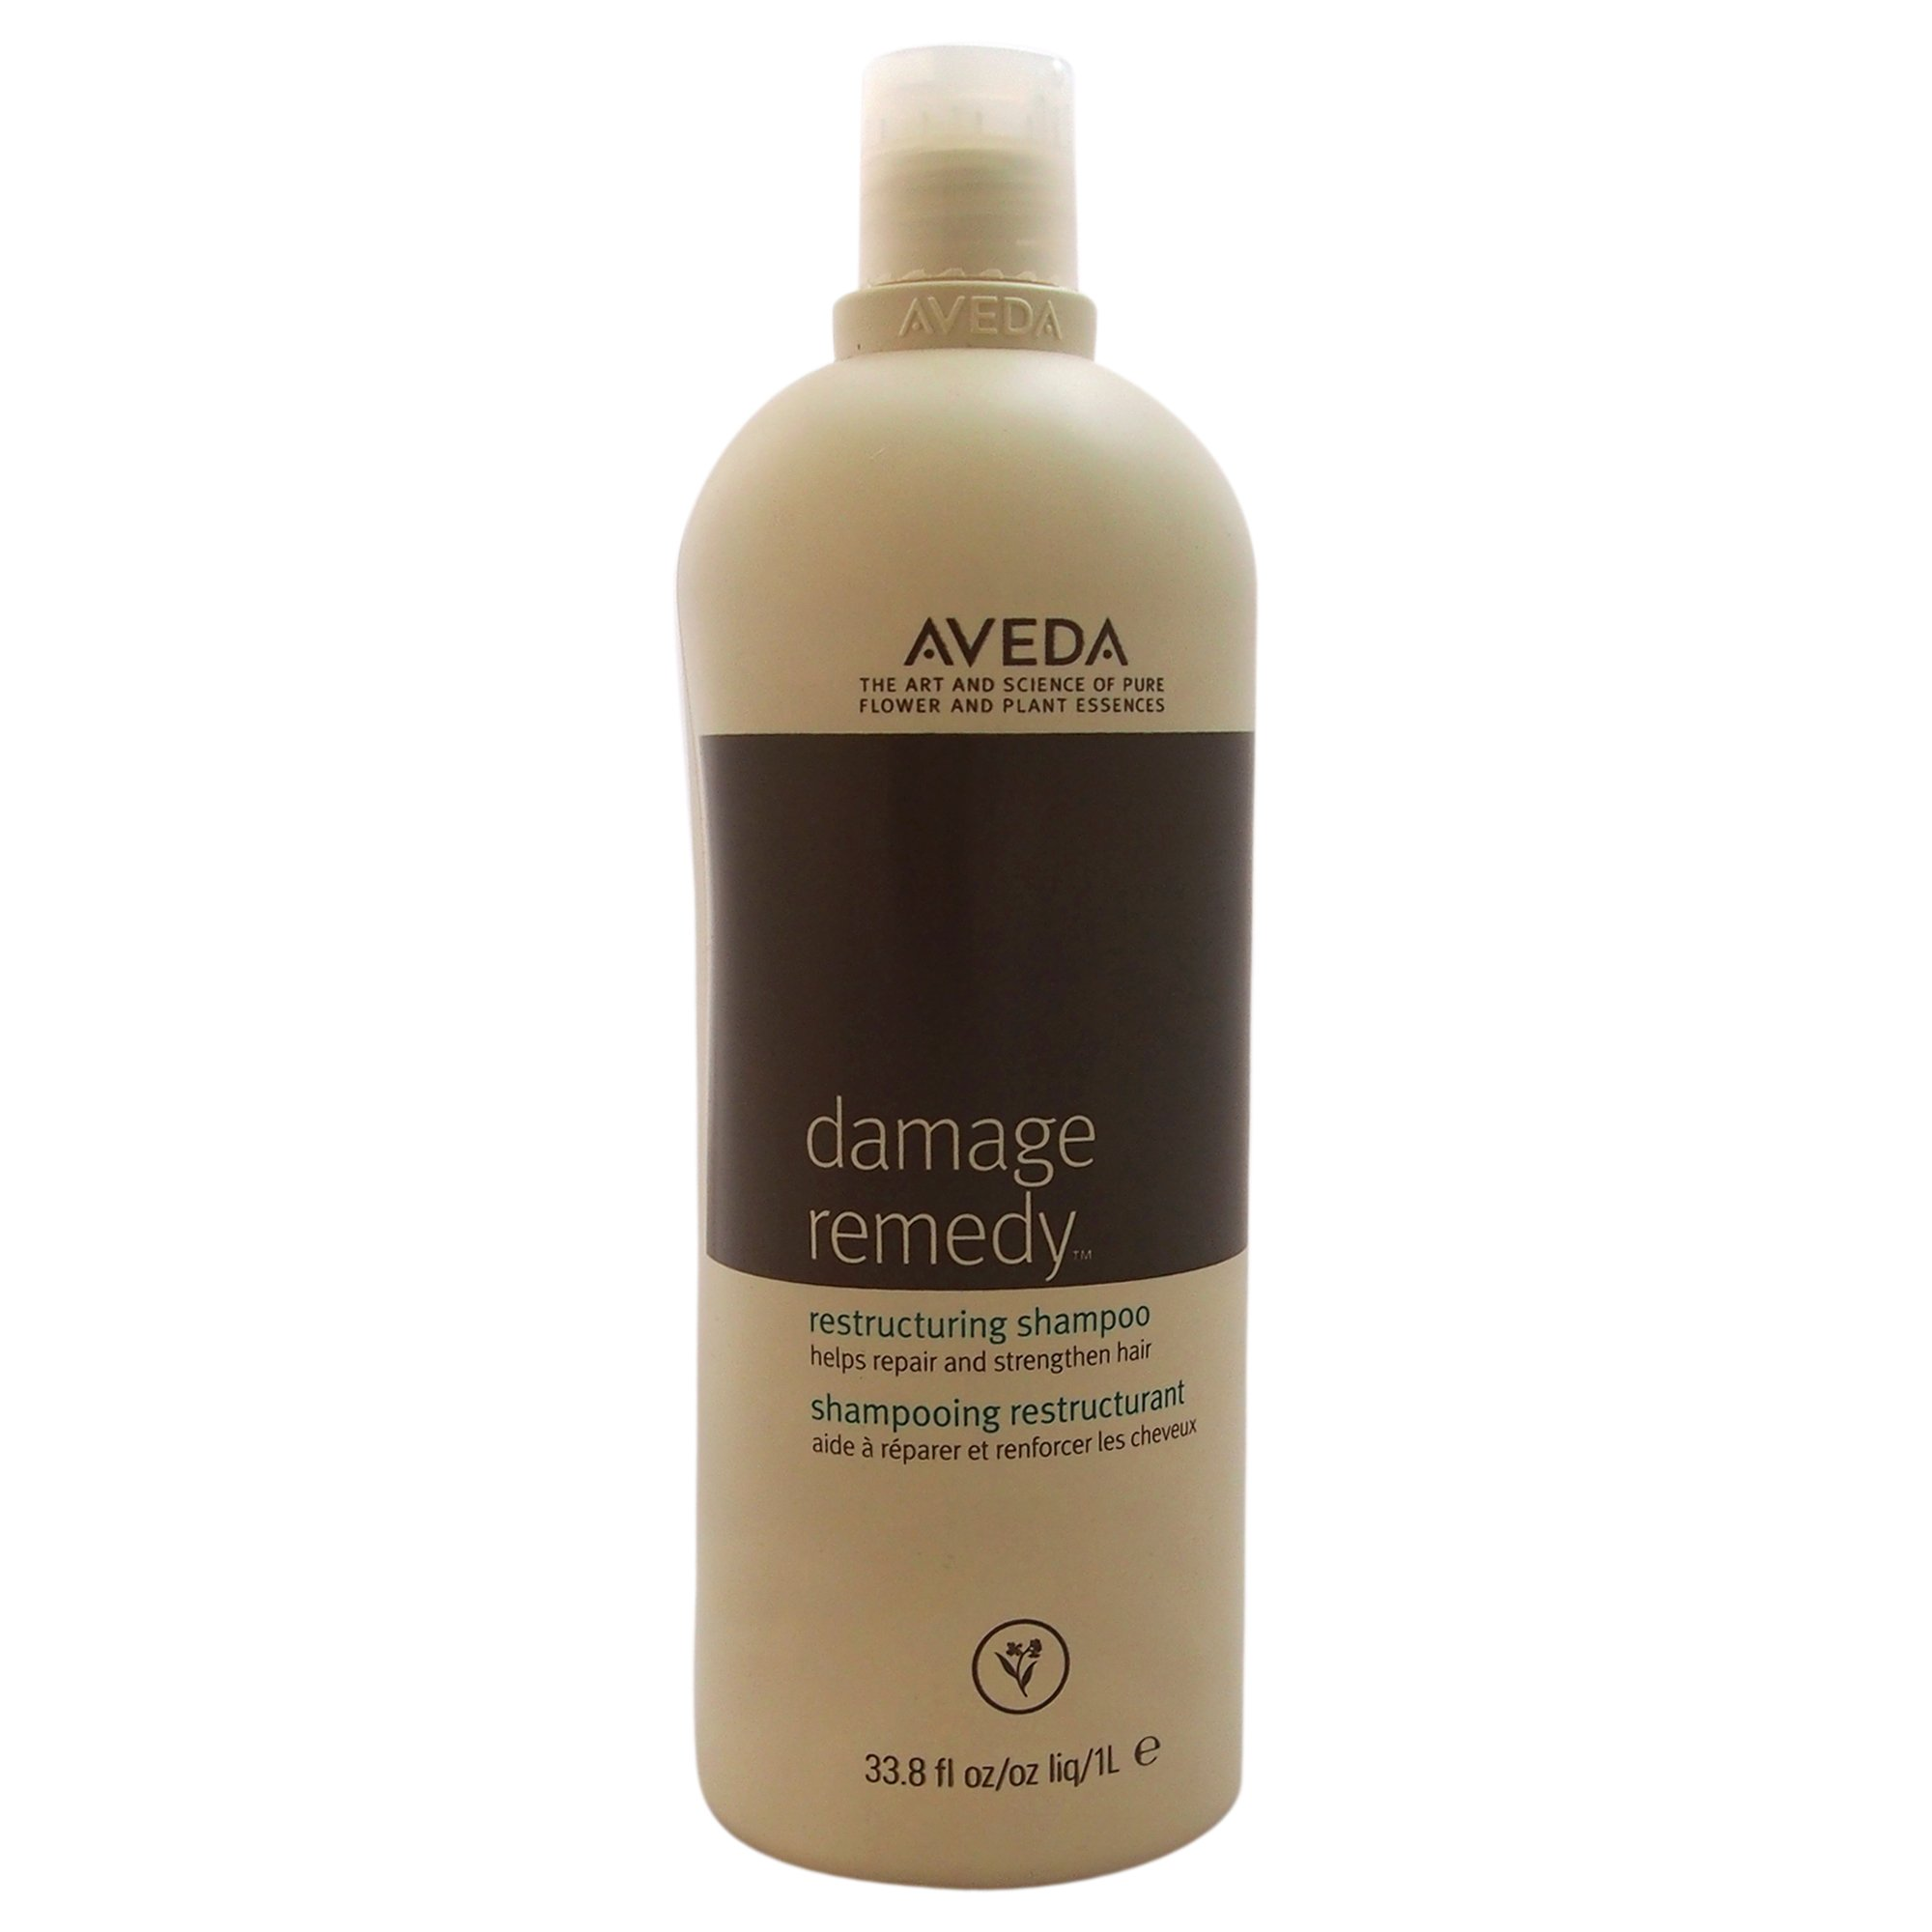 AVEDA Damage Remedy Shampoo, 33.8 Fluid Ounce by Aveda